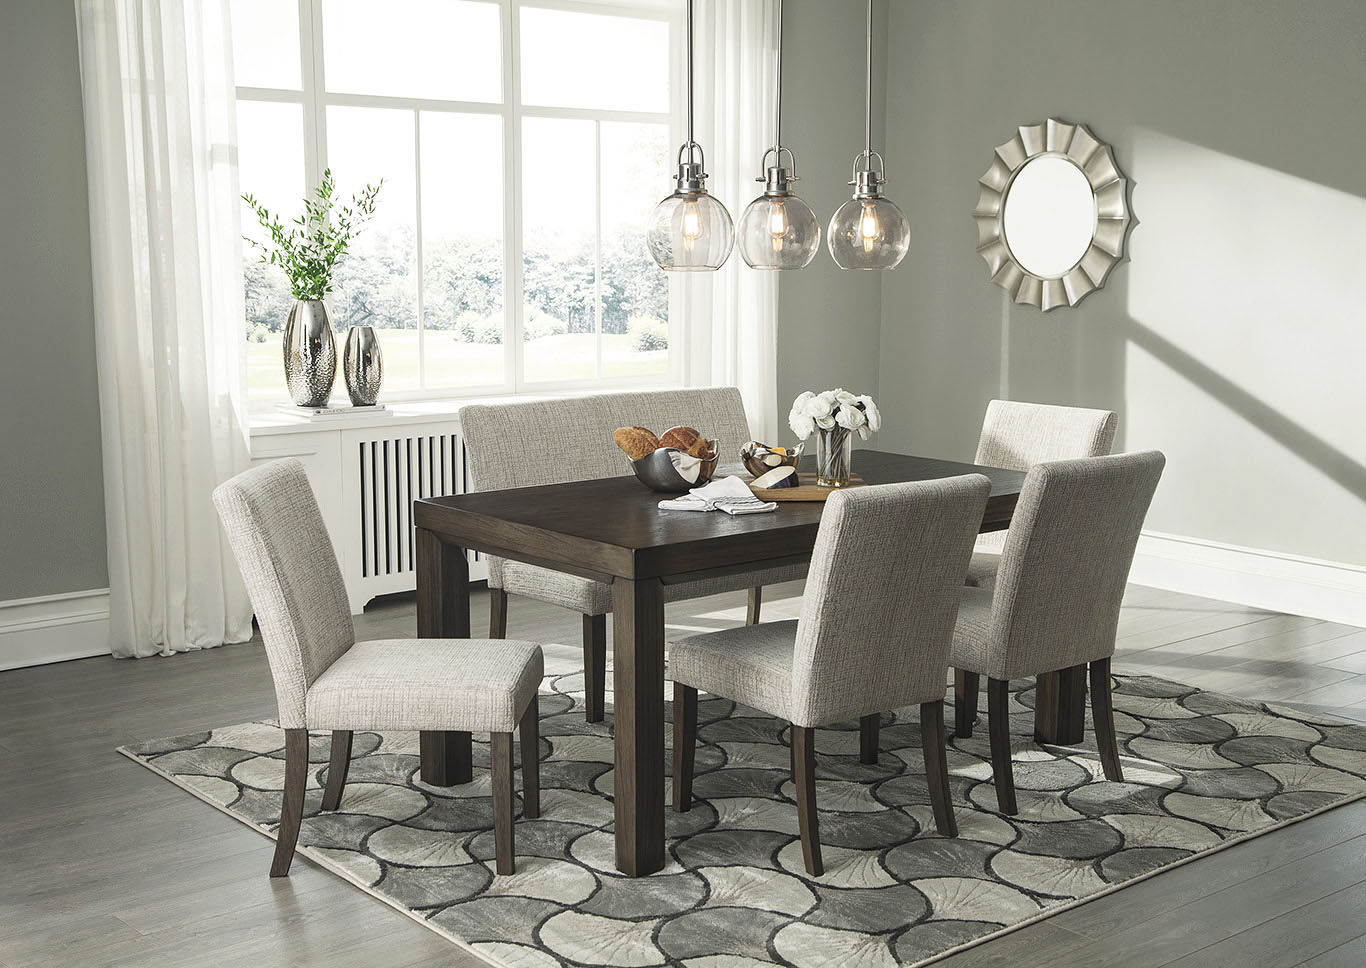 Deylin Dining Table W 4 Side Chairs And Bench Ashley Furniture Homestore Independently Owned And Operated By Dash Square